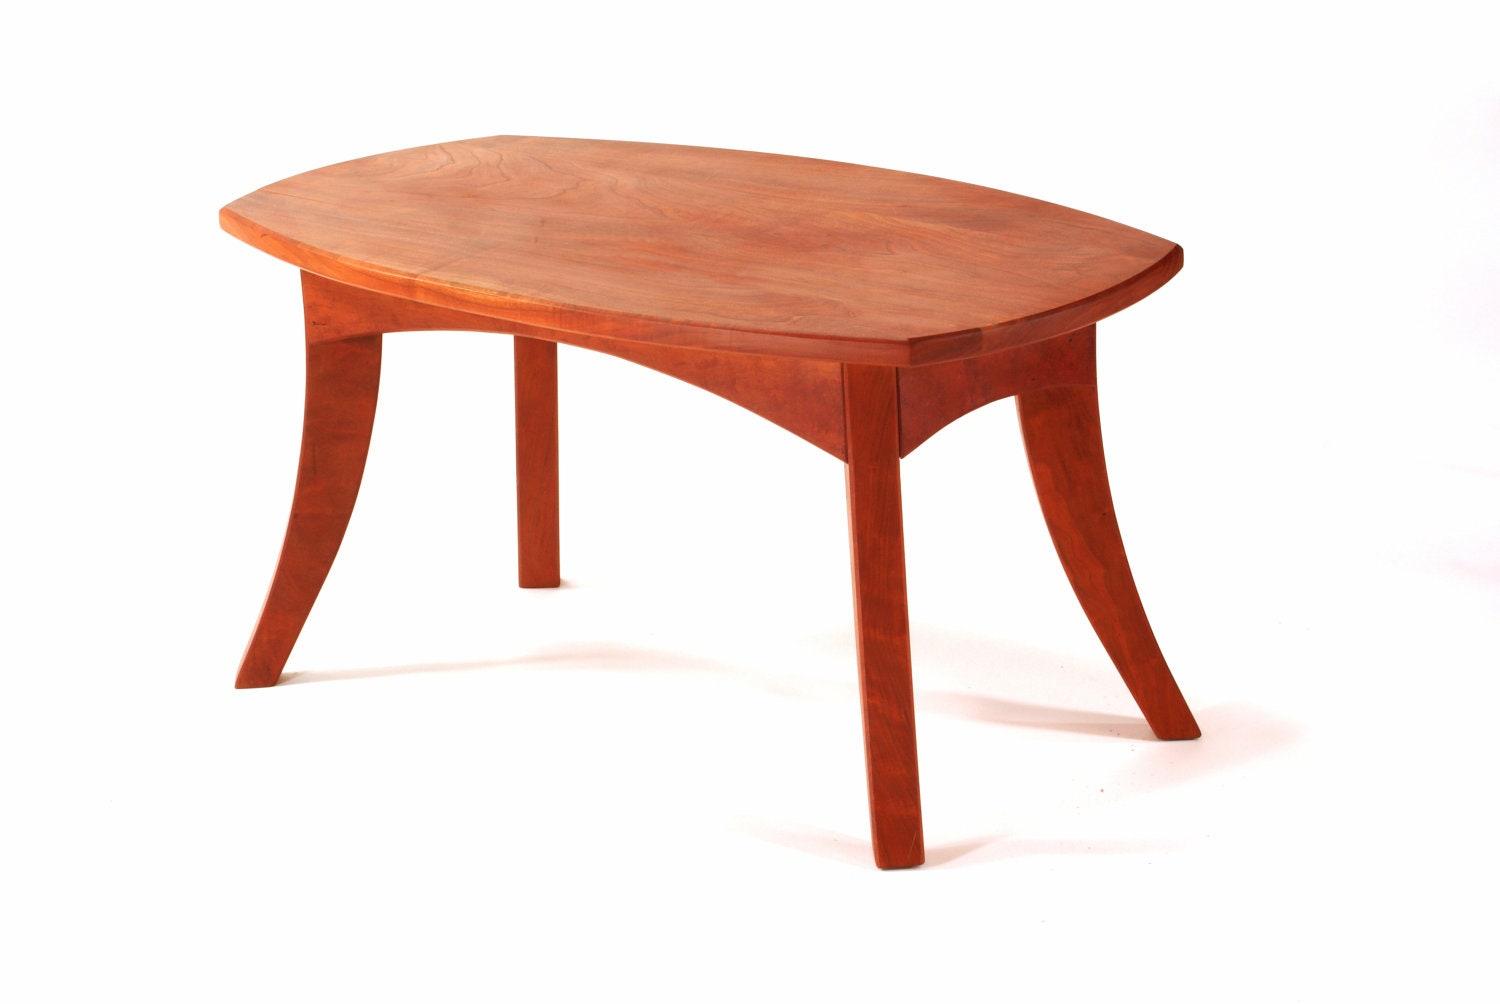 Fluidity Coffee Table Solid Cherry Wood Solid Wood Handmade